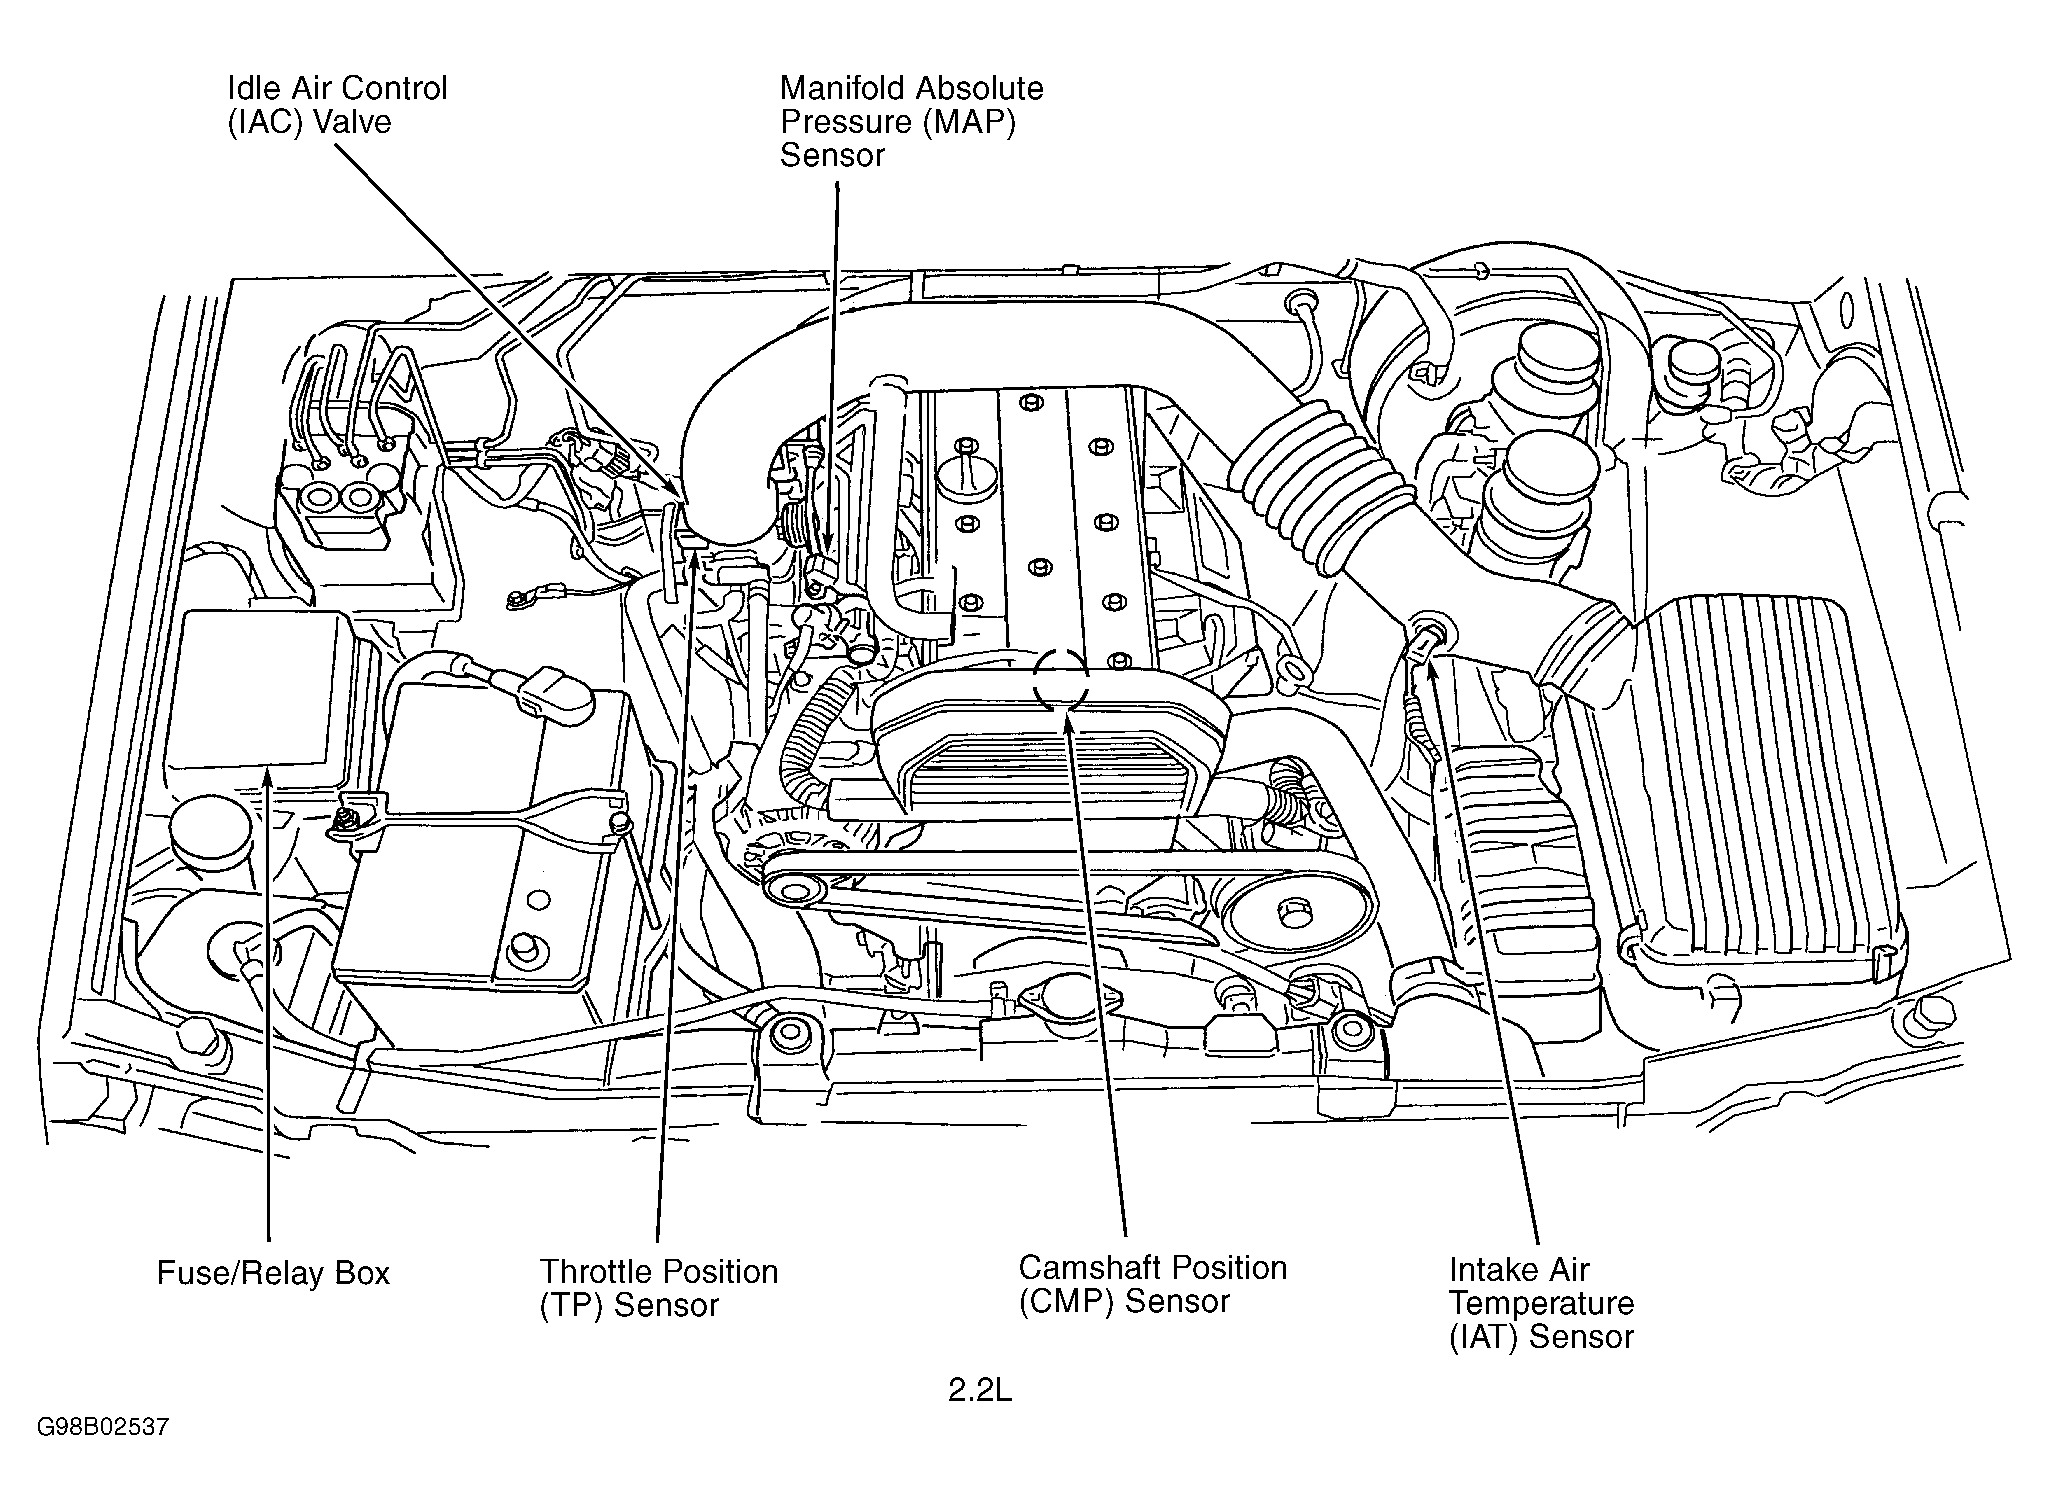 Camshaft Position Sensor: How Do I Change the Camshaft